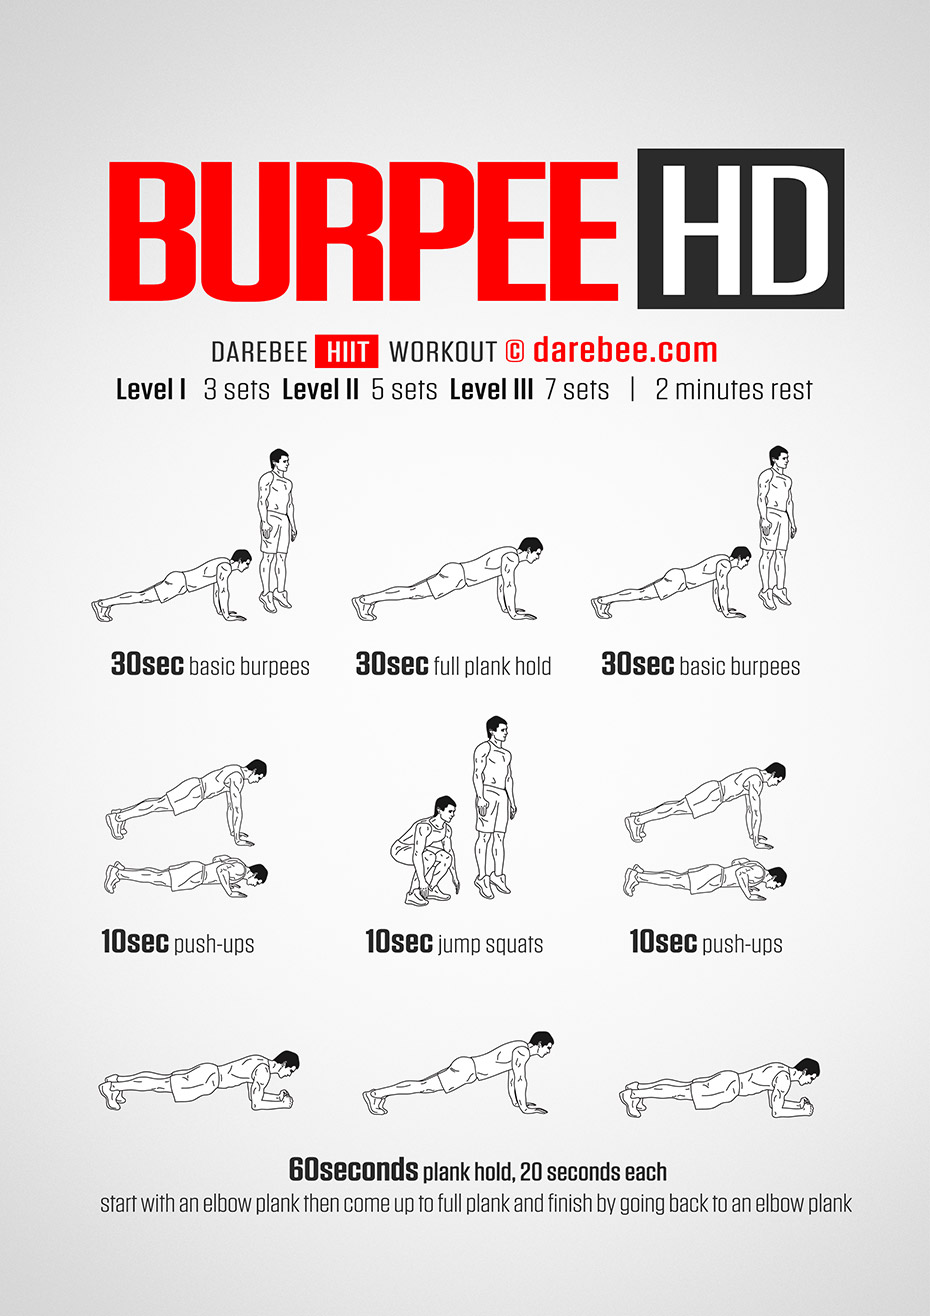 burpee-hd-workout